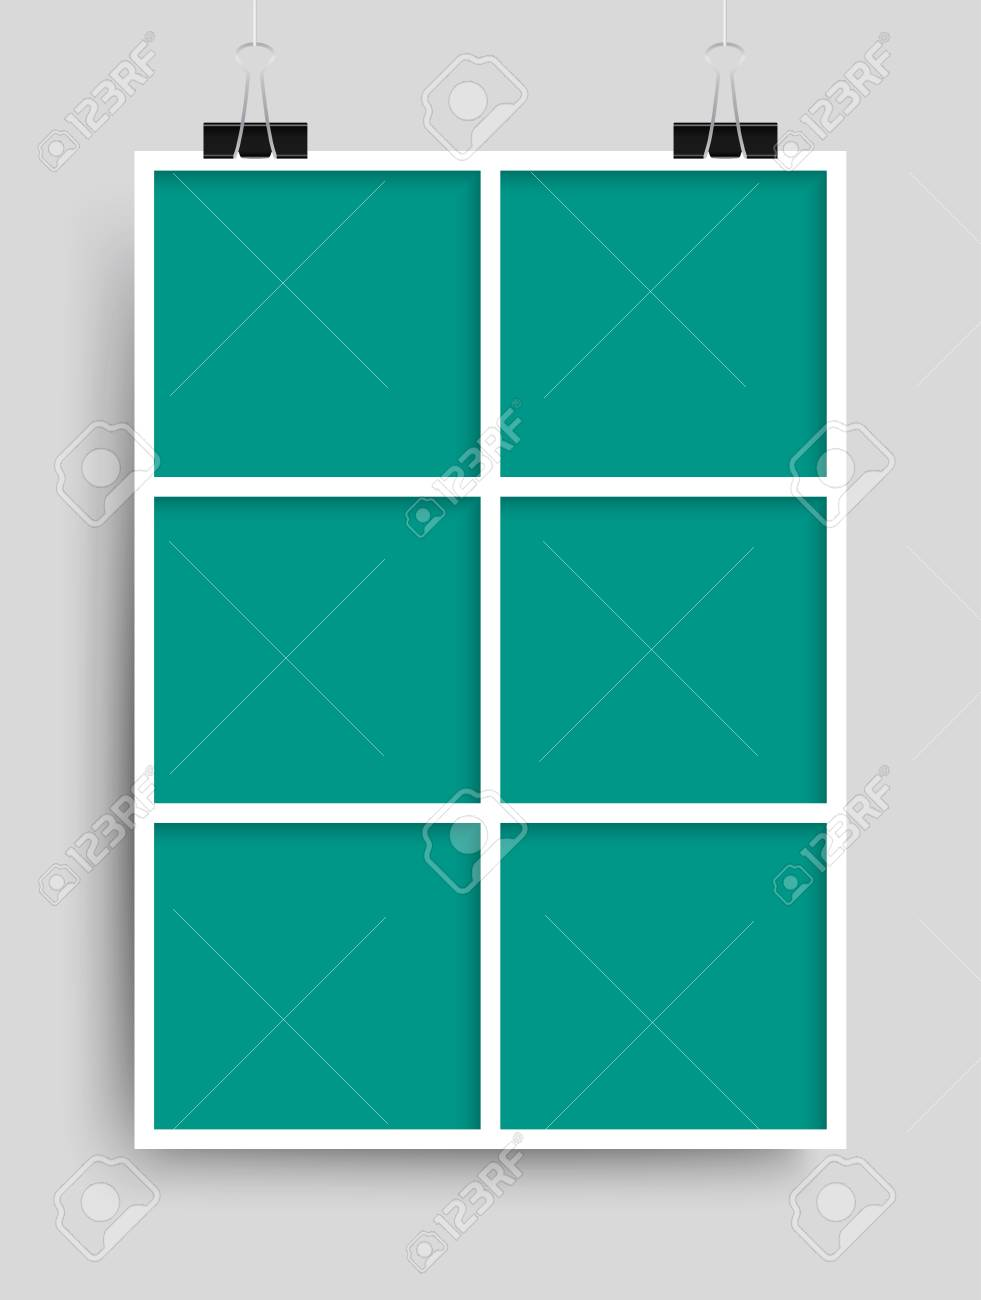 Templates Collage Six Frames For Photo Or Illustration. Vector ...